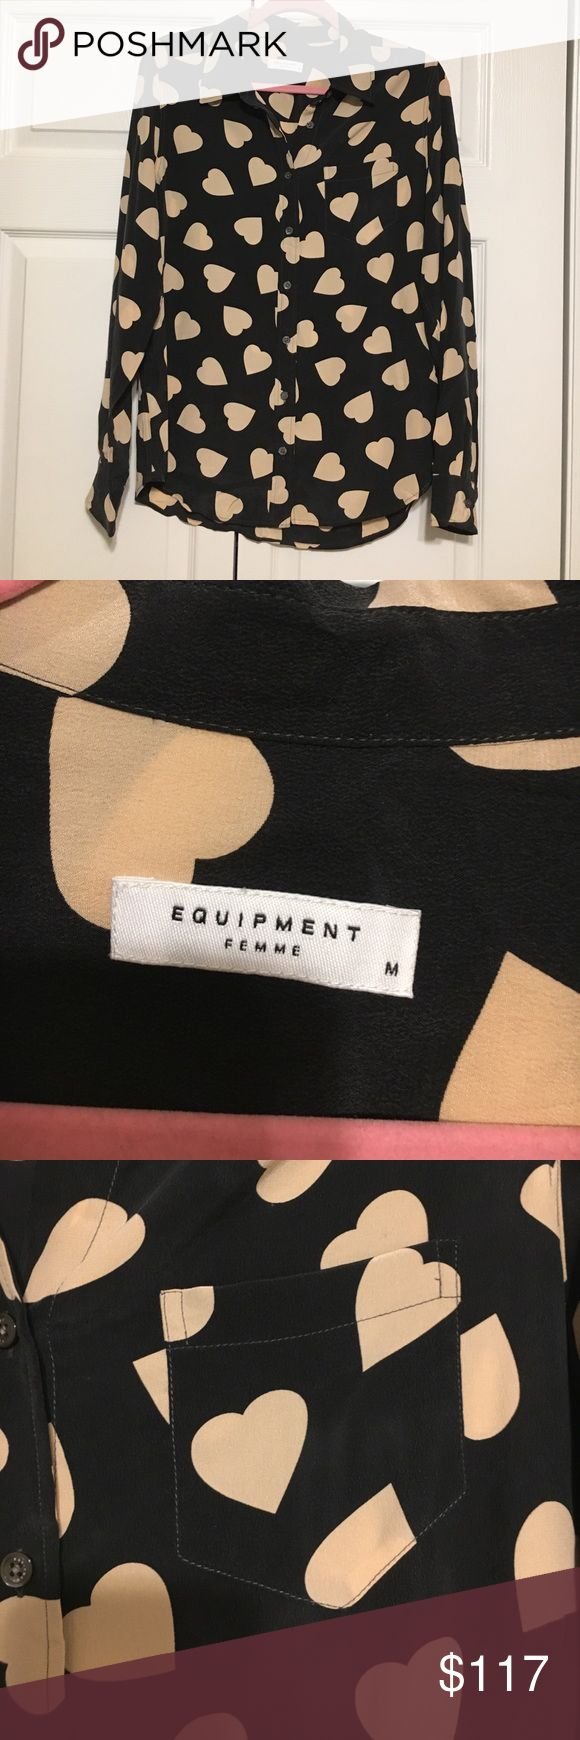 NWT Equipment Women's Silk Blouse Shirt Sz Medium 🔥New with tags! Equipment silk button-down blouse. Size Medium. Dark grey with light pink heart print. 100% silk. Comes with extra button. Perfect alone for fall or under a sweater in the winter. Such a versatile top - dress up with leather pants/skirt or casual with leggings. Don't miss this one! Equipment Tops Blouses